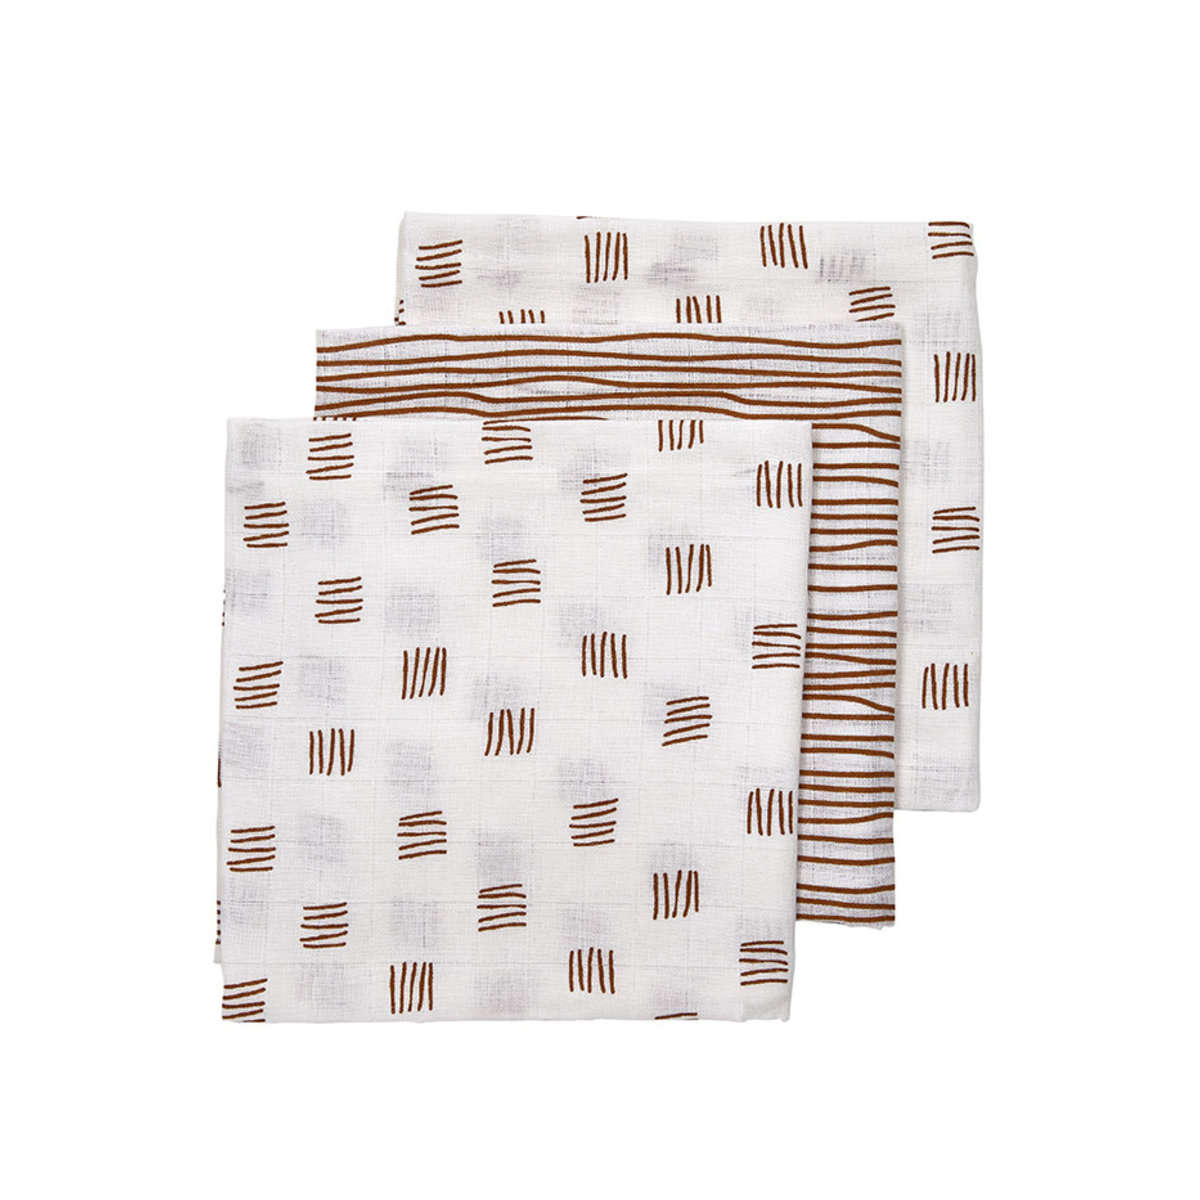 Meyco Hydrophilic Diapers Block Stripe - 3-Pack